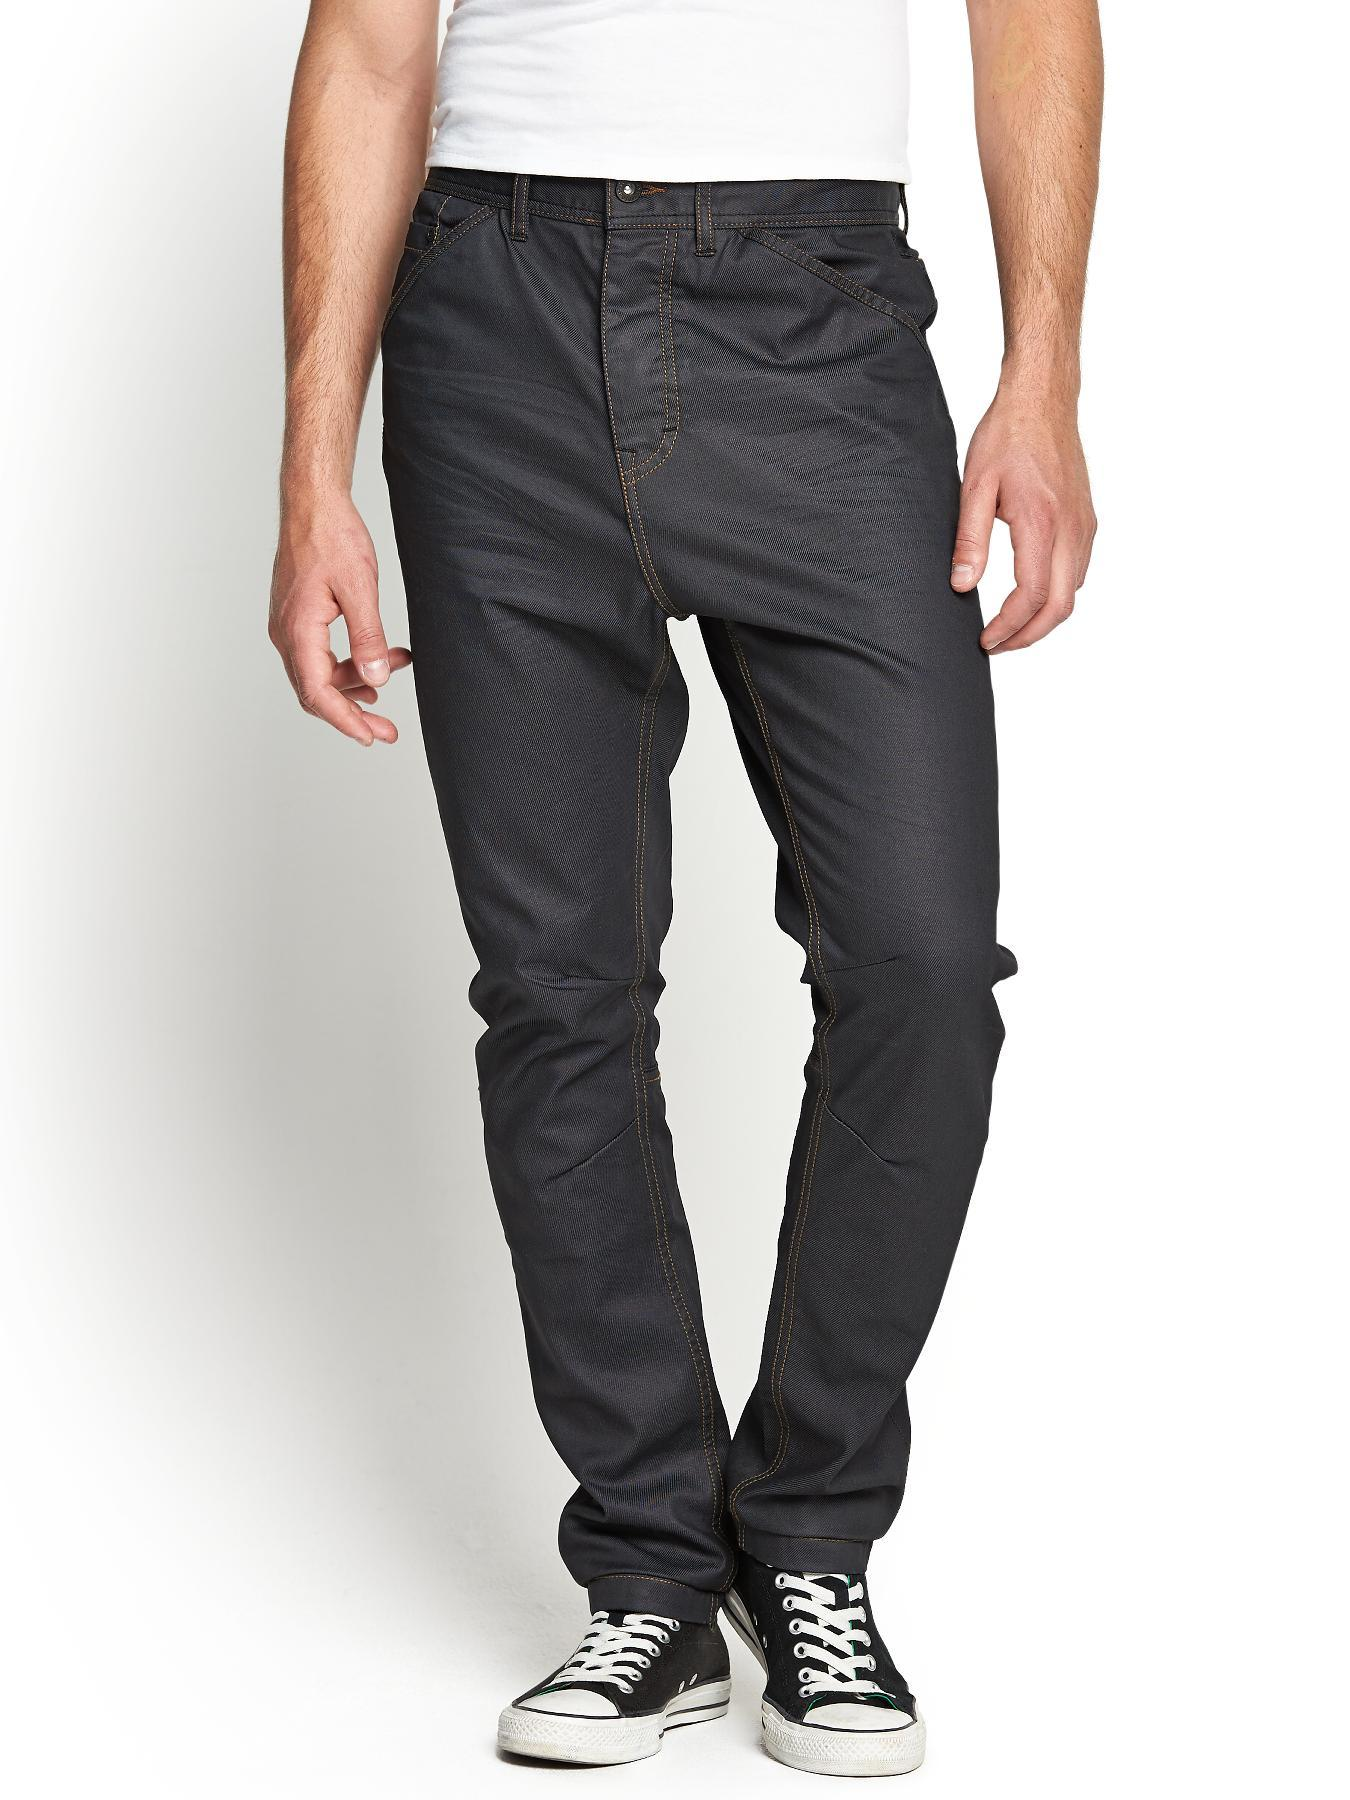 Mens Coated Carrot Fit Jeans, Black